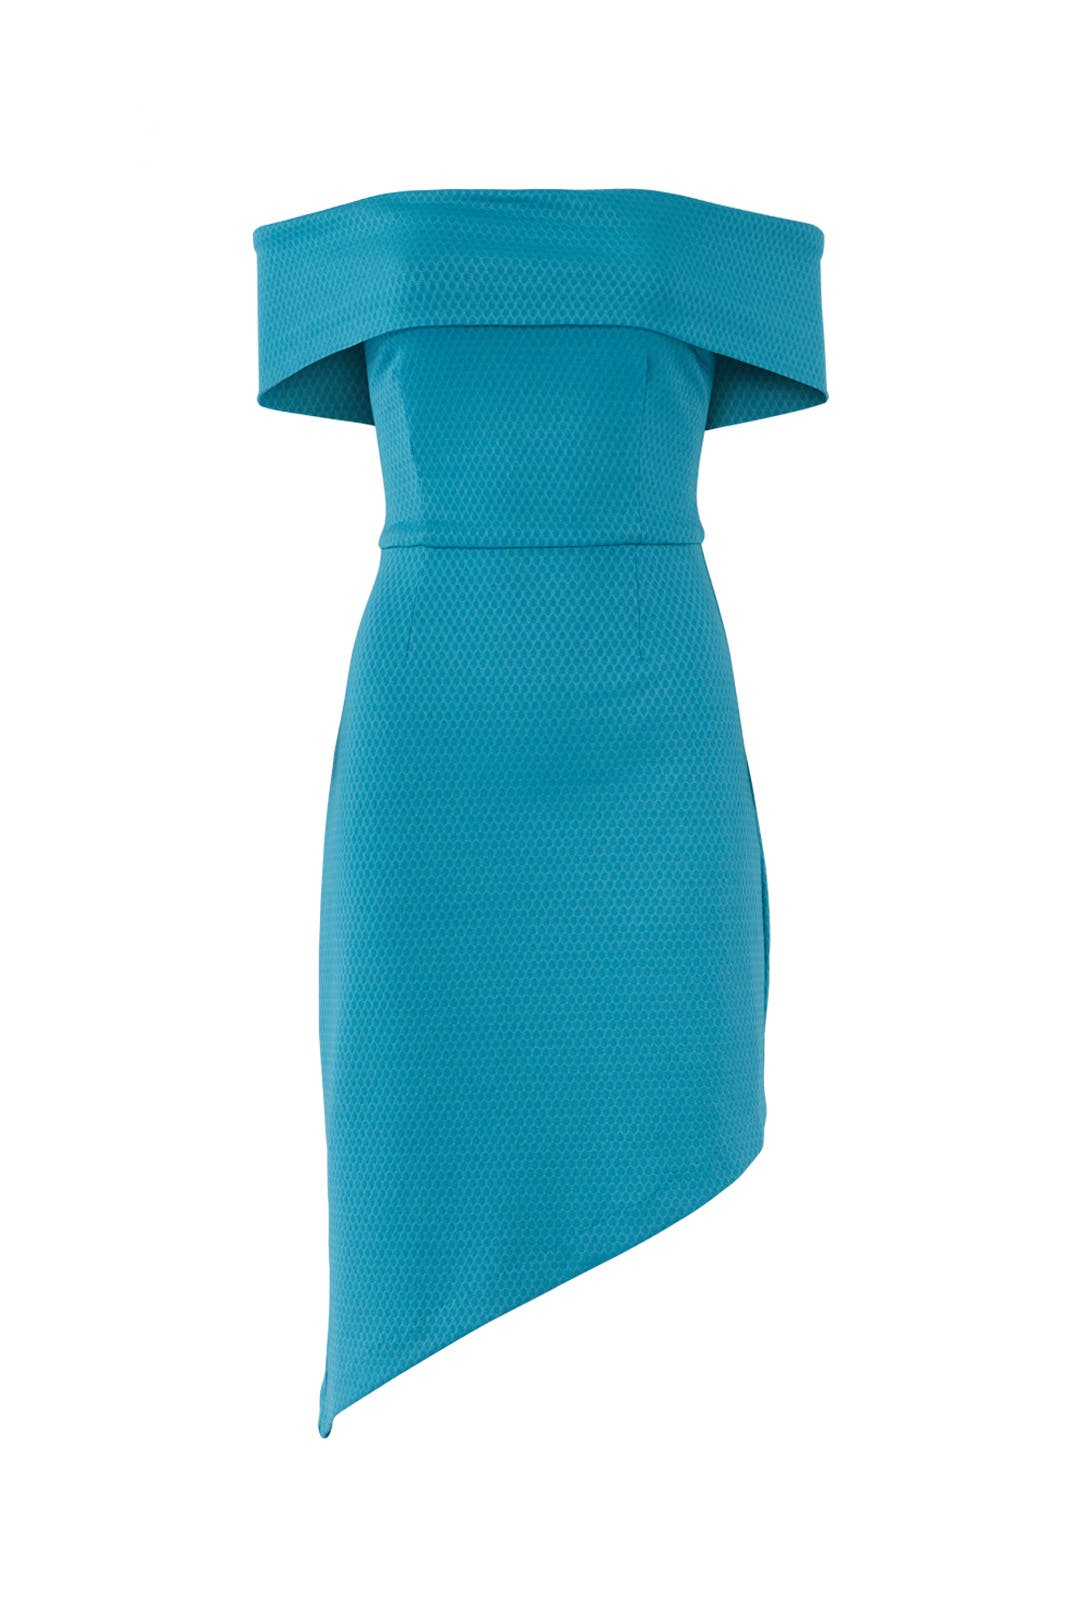 Blue Off Shoulder Asymmetric Dress by Slate & Willow for $30 - $45 ...